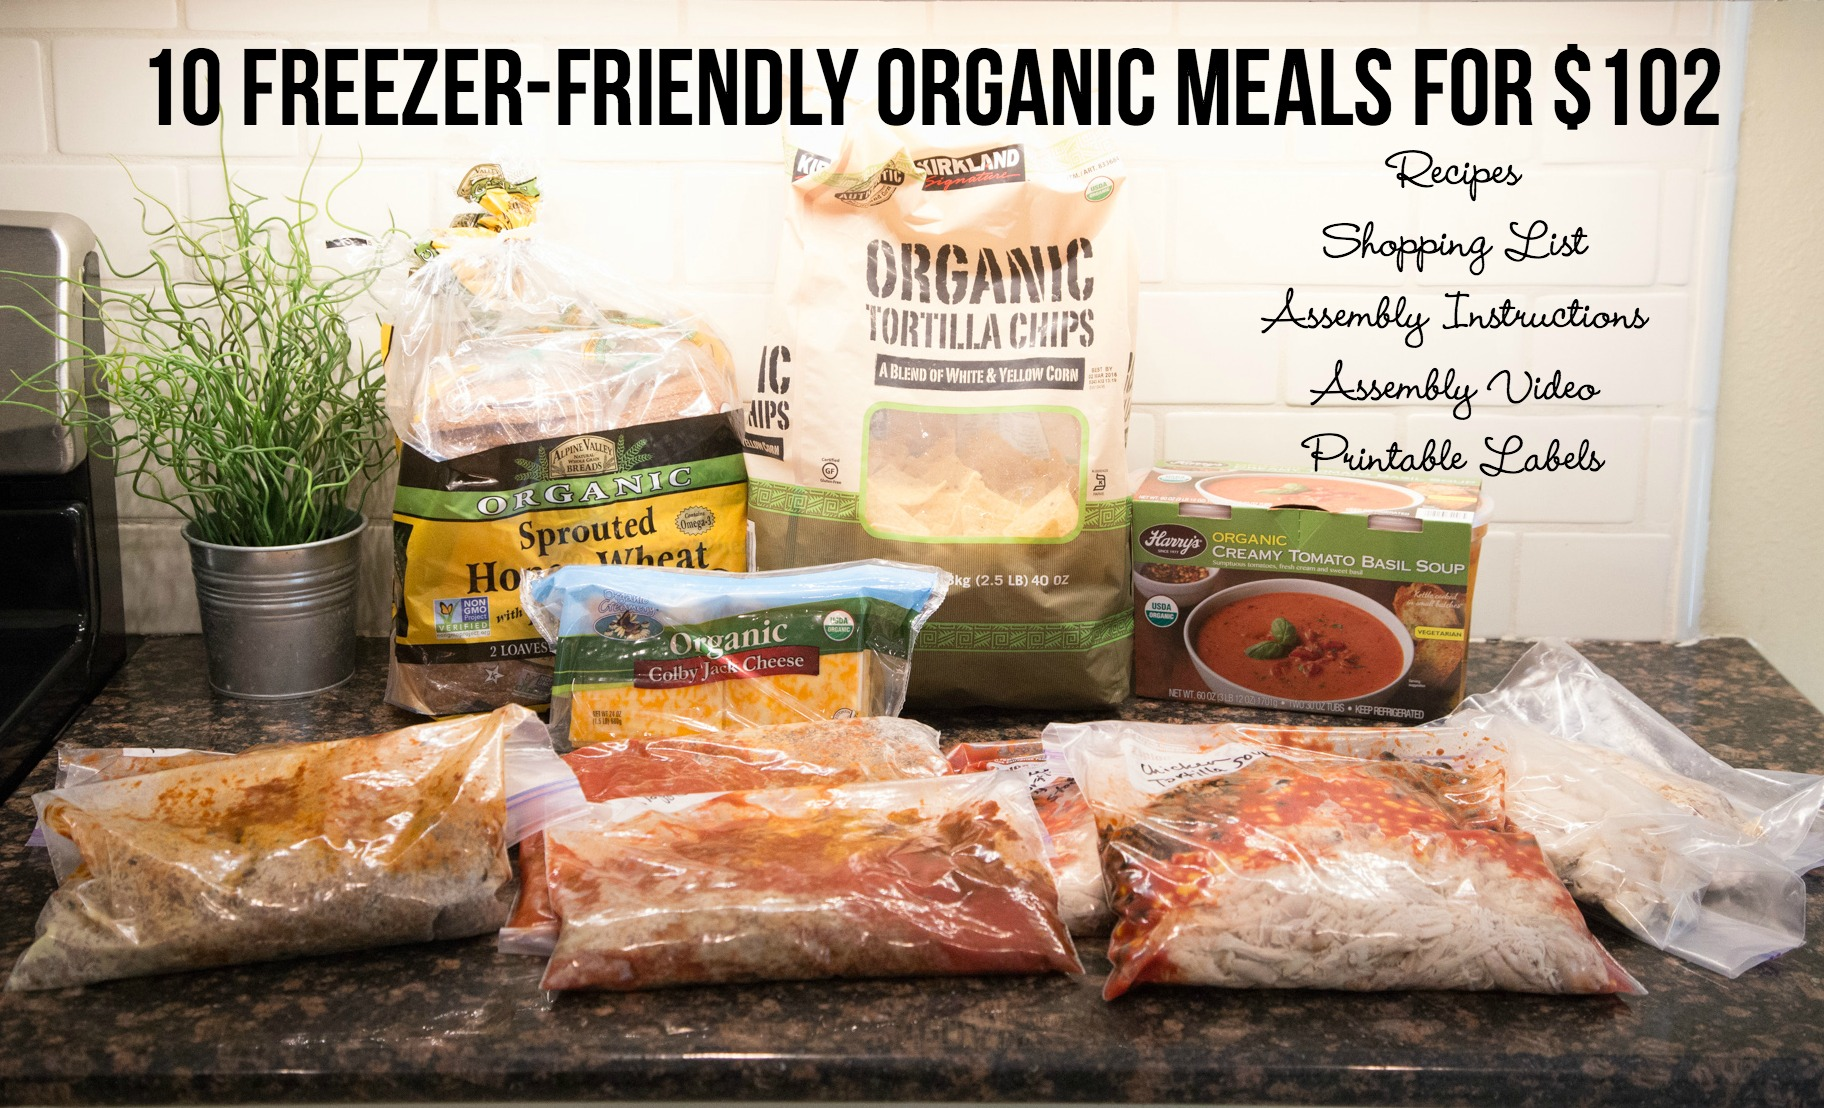 planning made easy with 10 freezer friendly organic meals